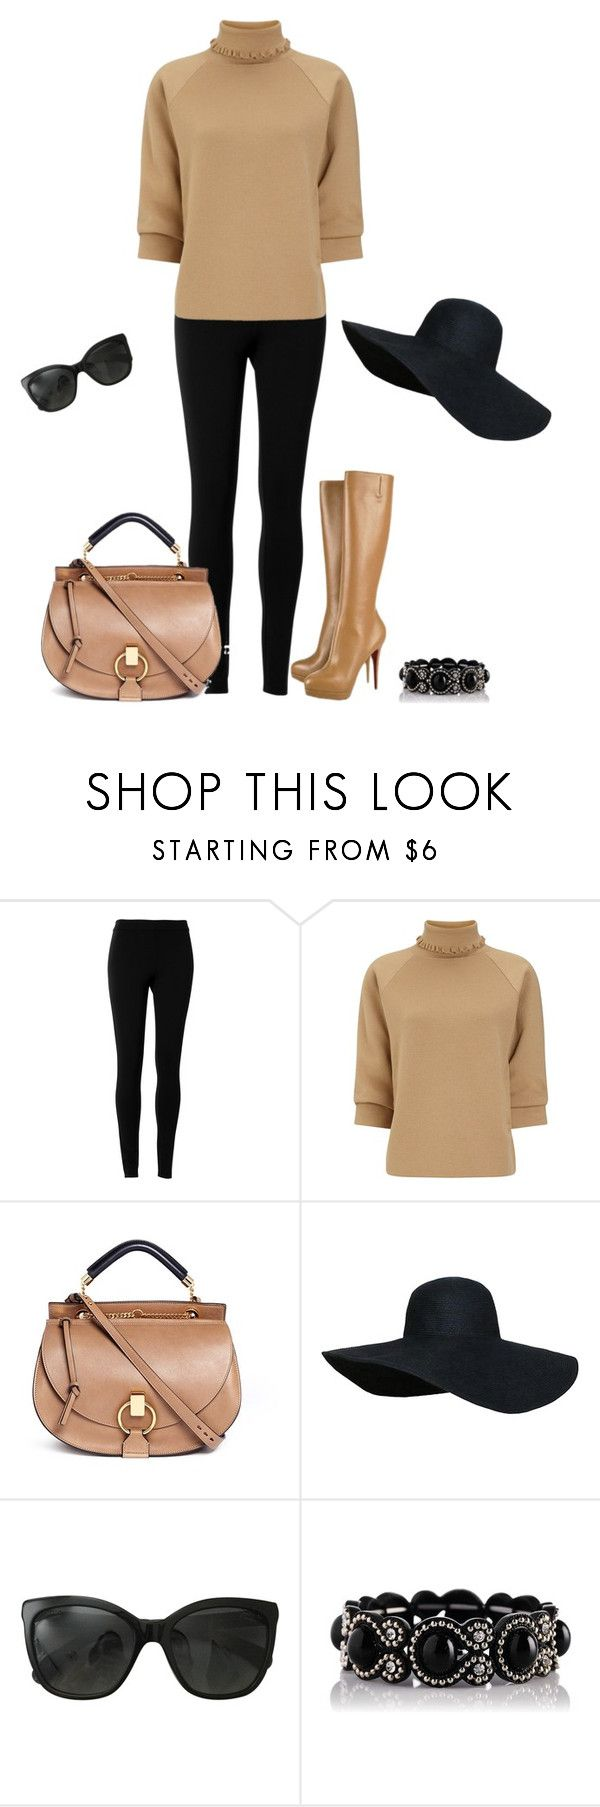 """""""Wann kommt der Winter?"""" by julcheen ❤ liked on Polyvore featuring Max Studio, J.W. Anderson, Christian Louboutin, Chloé and Chanel"""